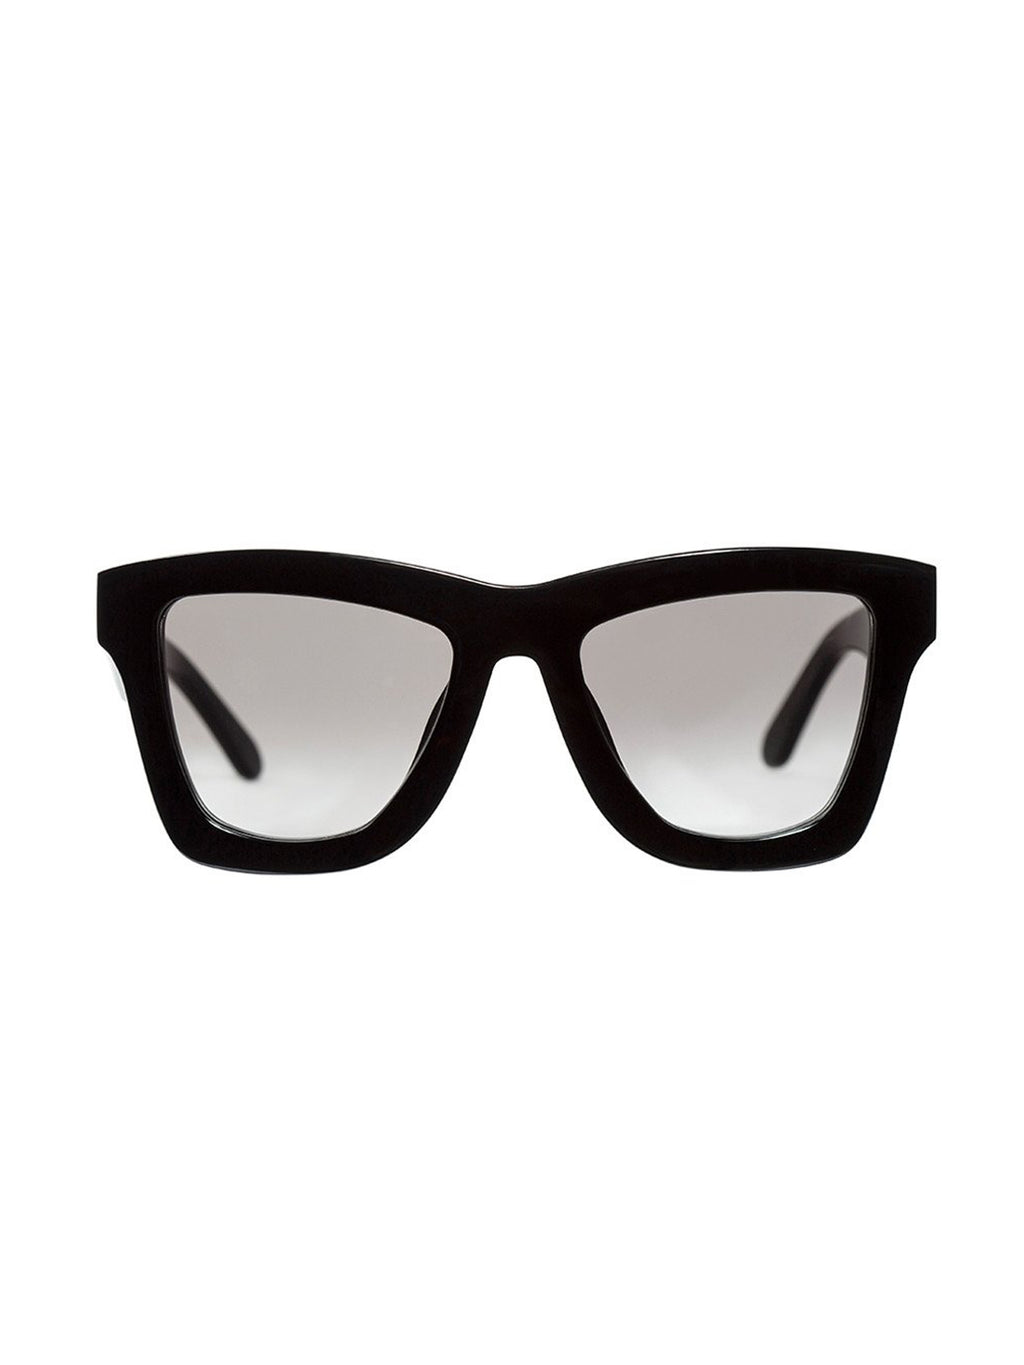 VALLEY EYEWEAR DB II | Gloss Black / Black Gradient Lens